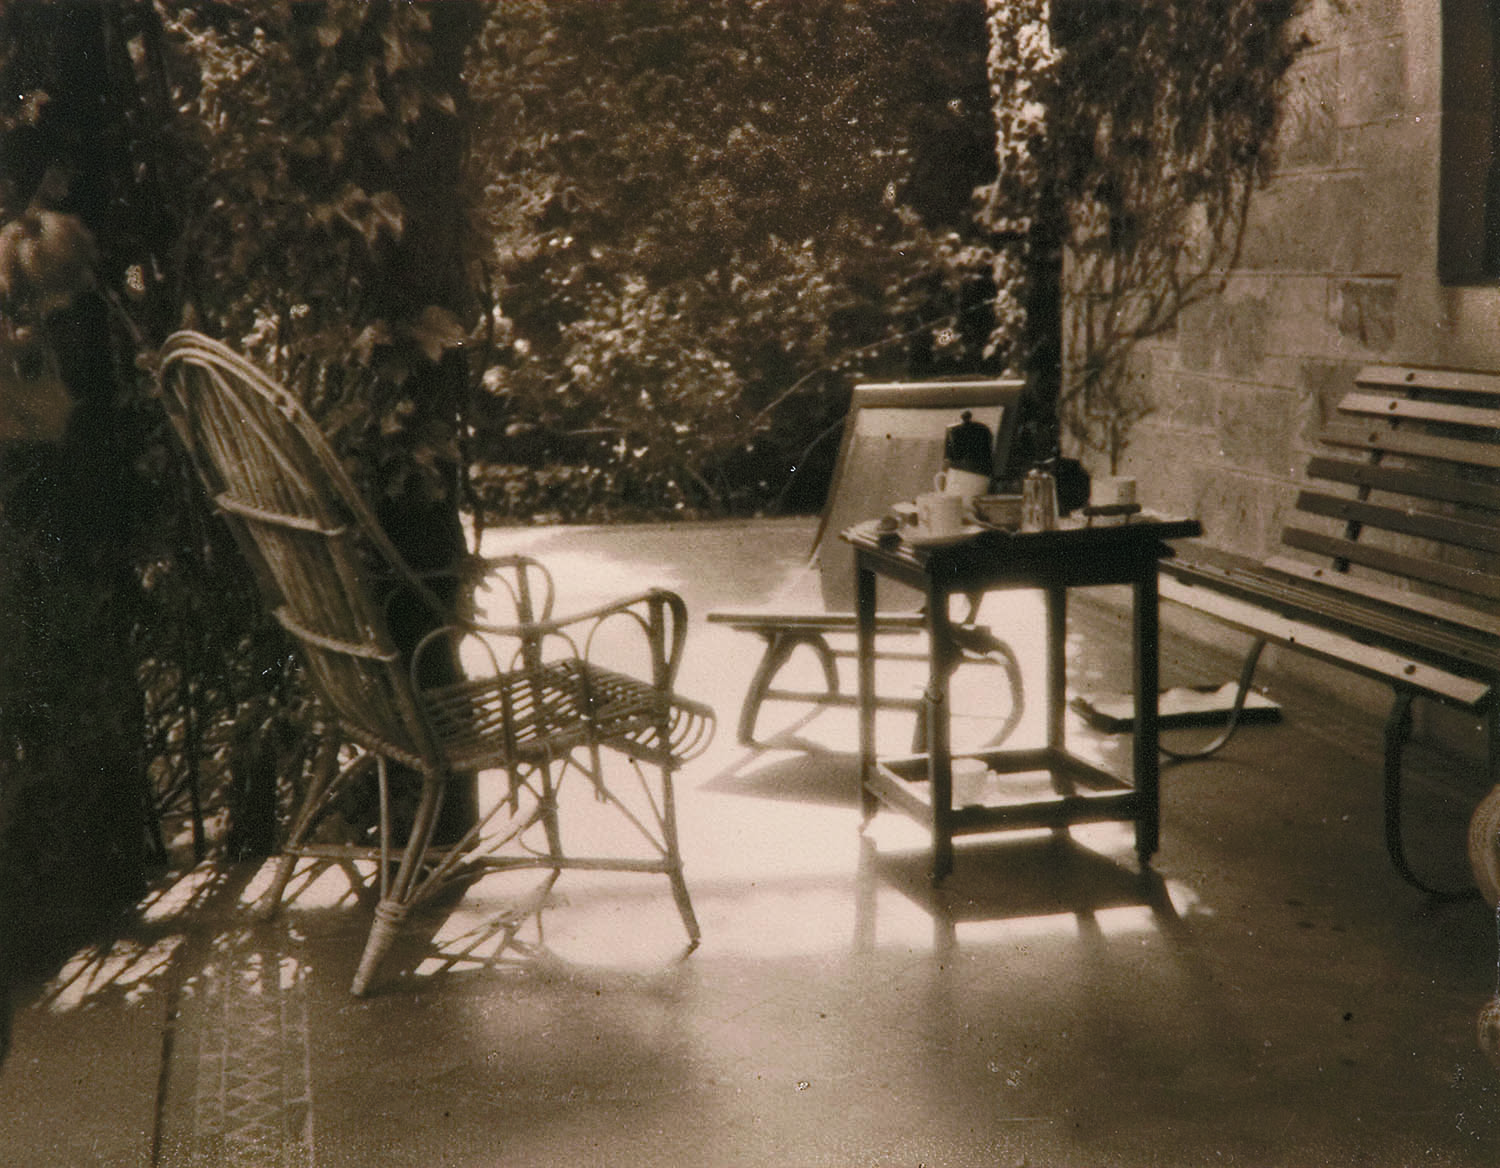 P H Williams, Australia, 1881 ‑ 1934, The guests have departed ,c.1926, Adelaide, toned gelatin‑silver photograph, 15.6 x 20.1 cm (image). Purchased 1926, Art Gallery of South Australia, Adelaide. 2611Ph2